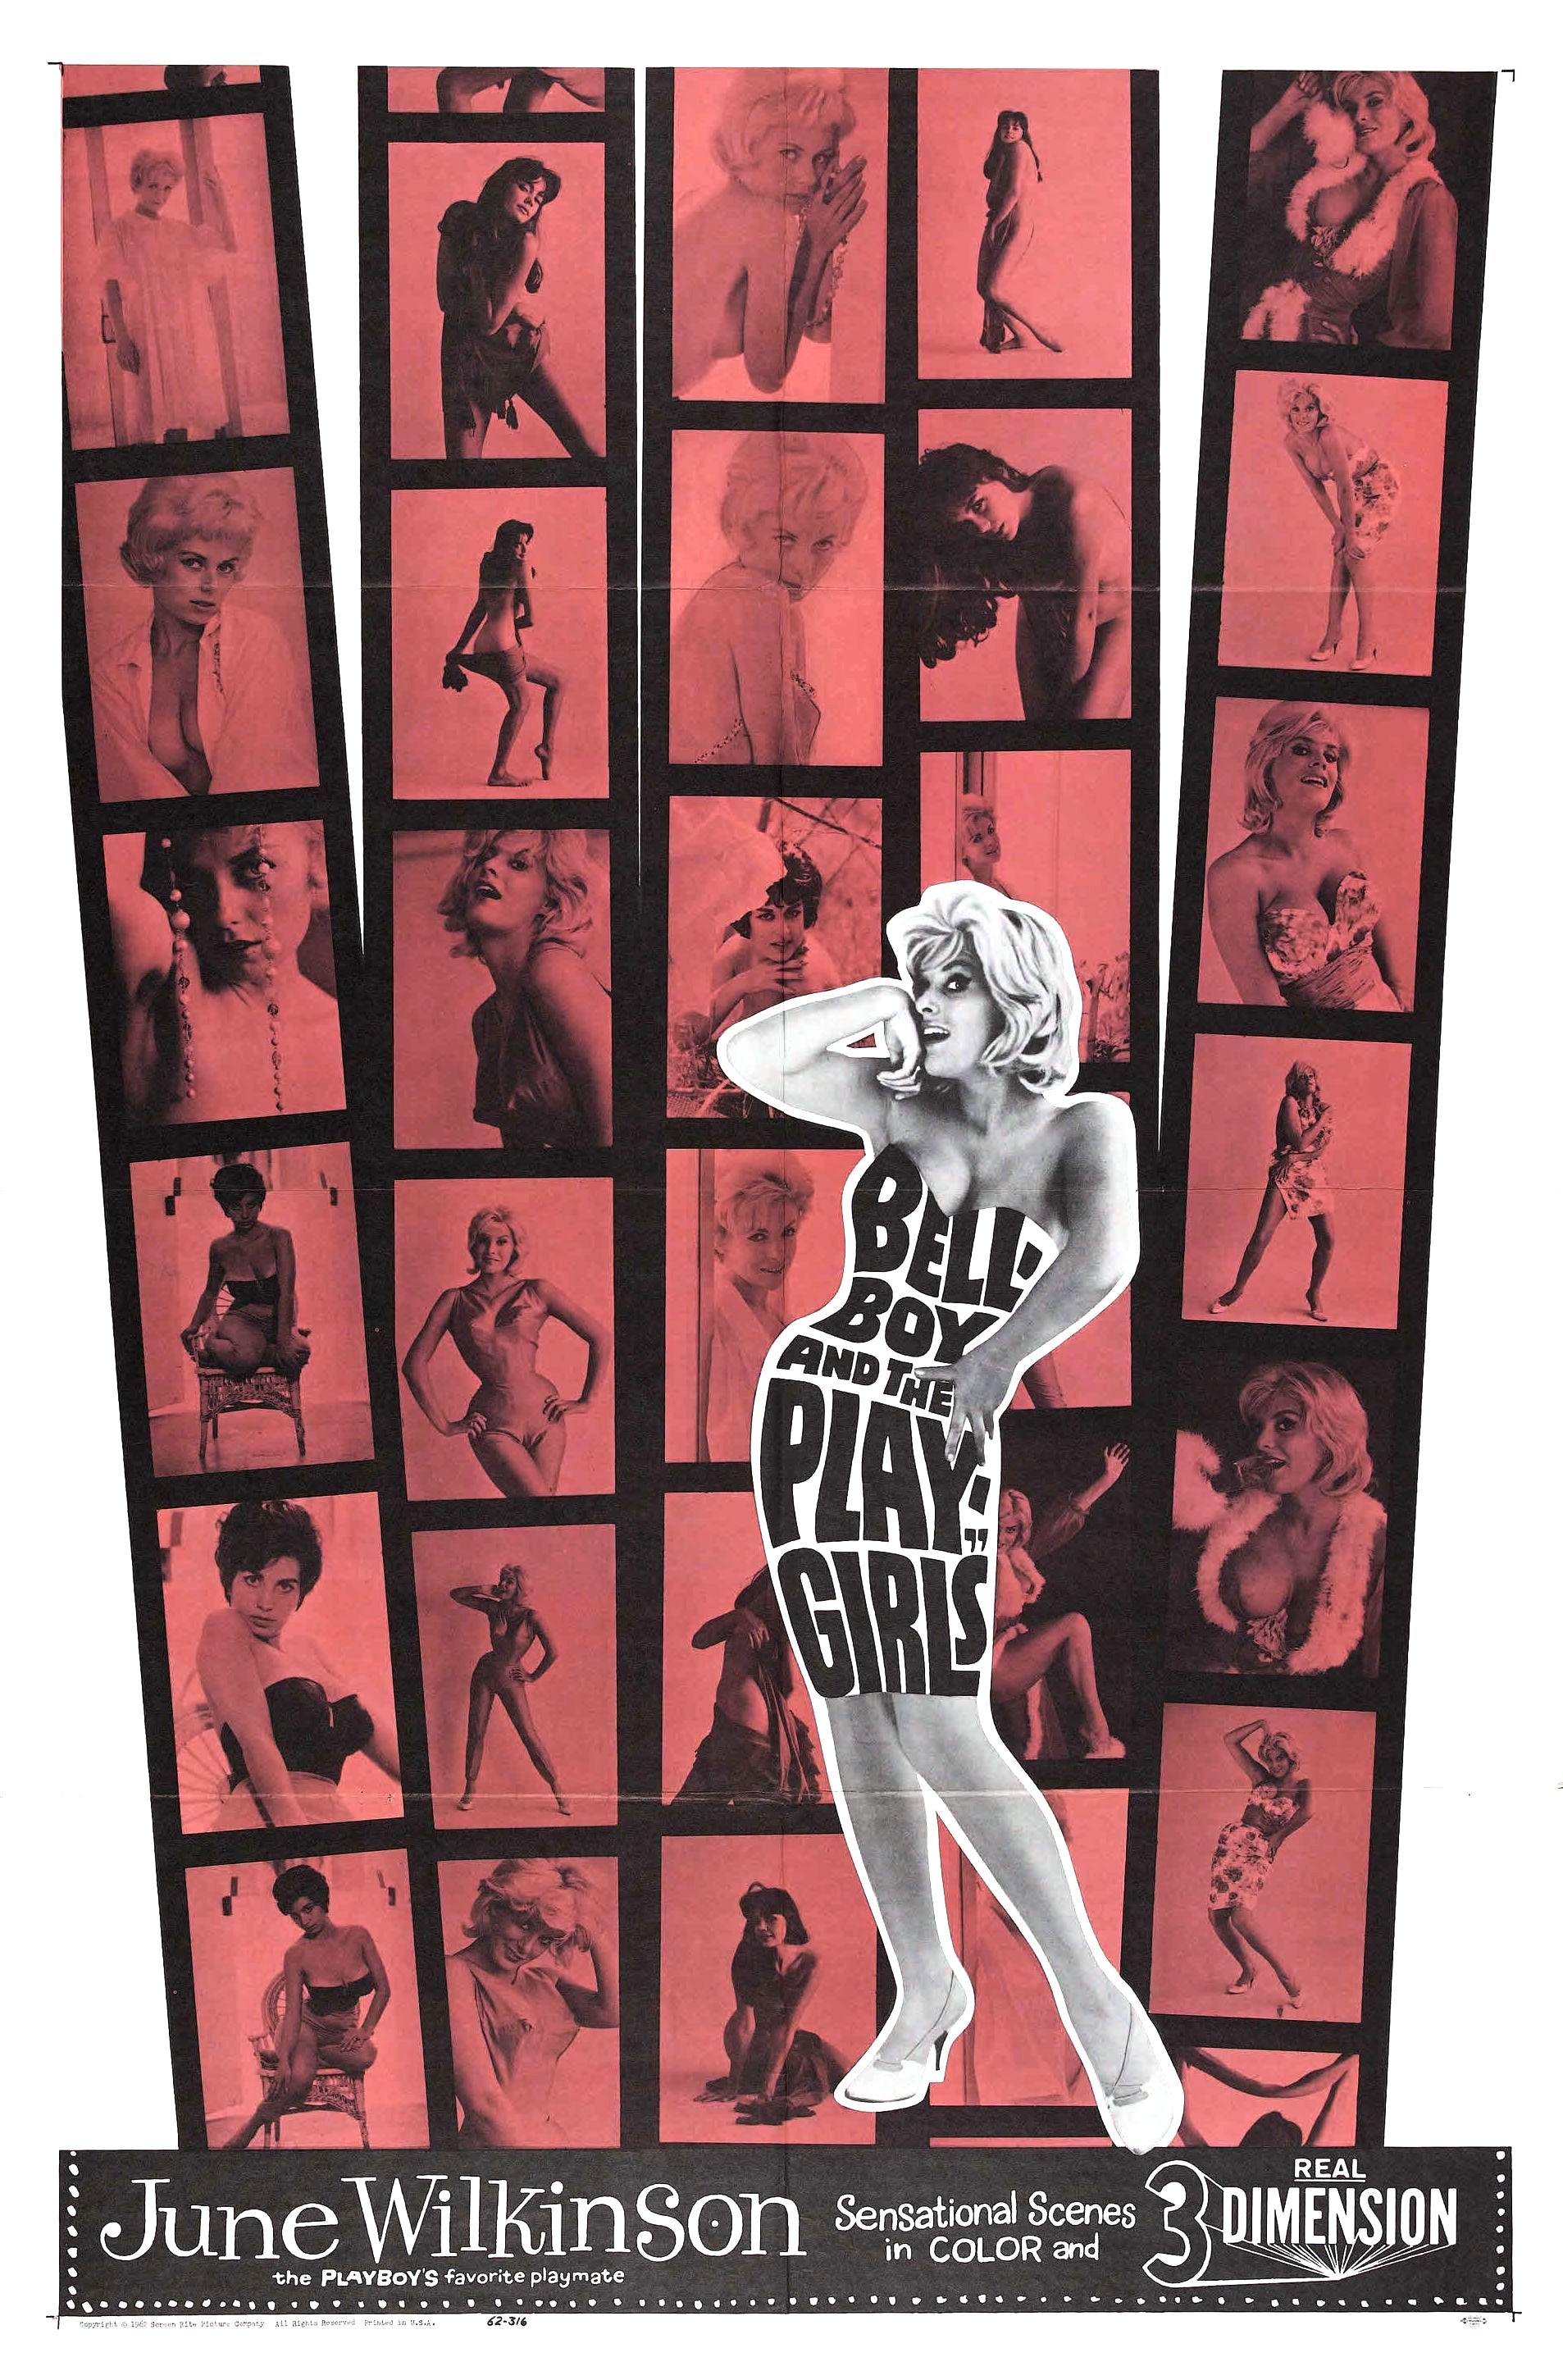 bellboy_and_playgirls_poster_02